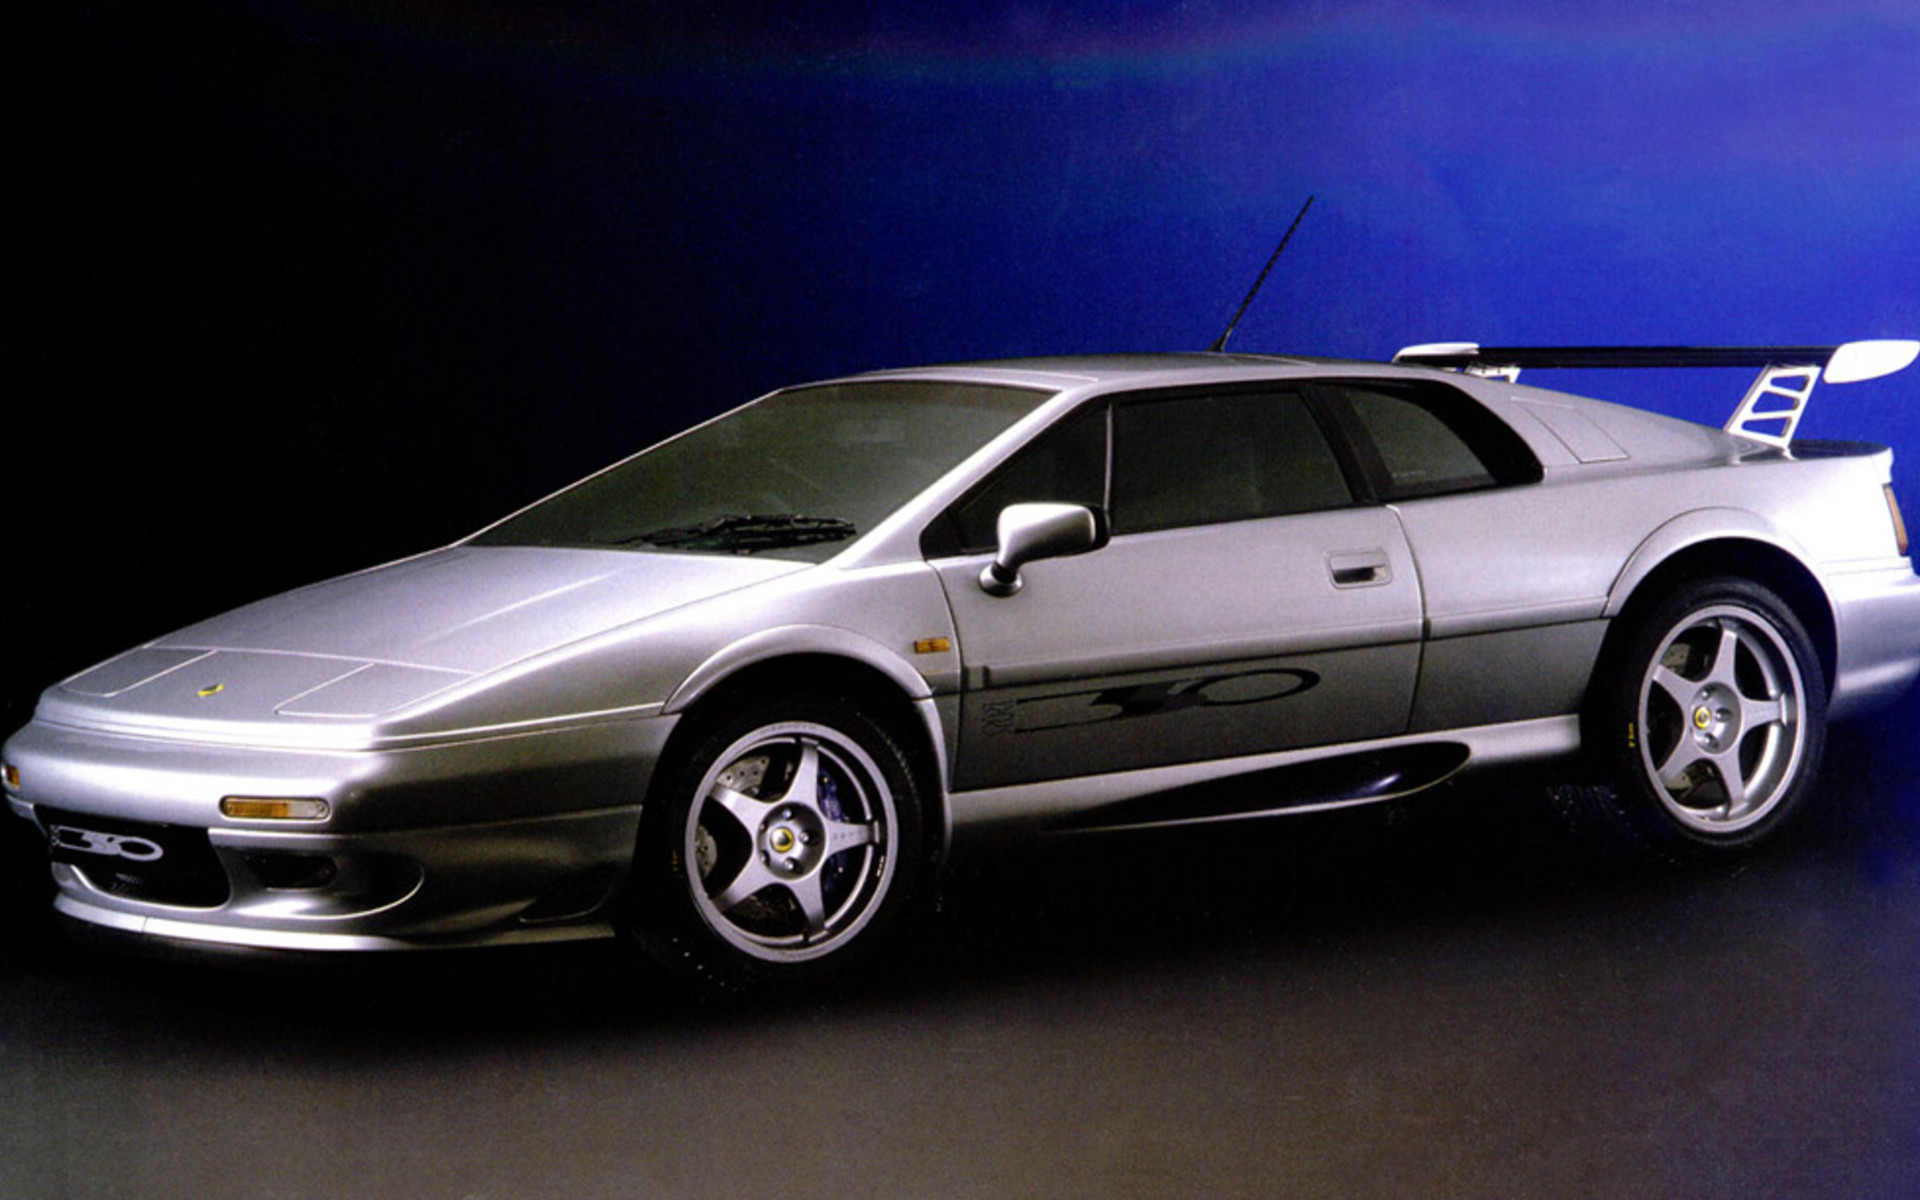 LOTUS ESPRIT 350 white